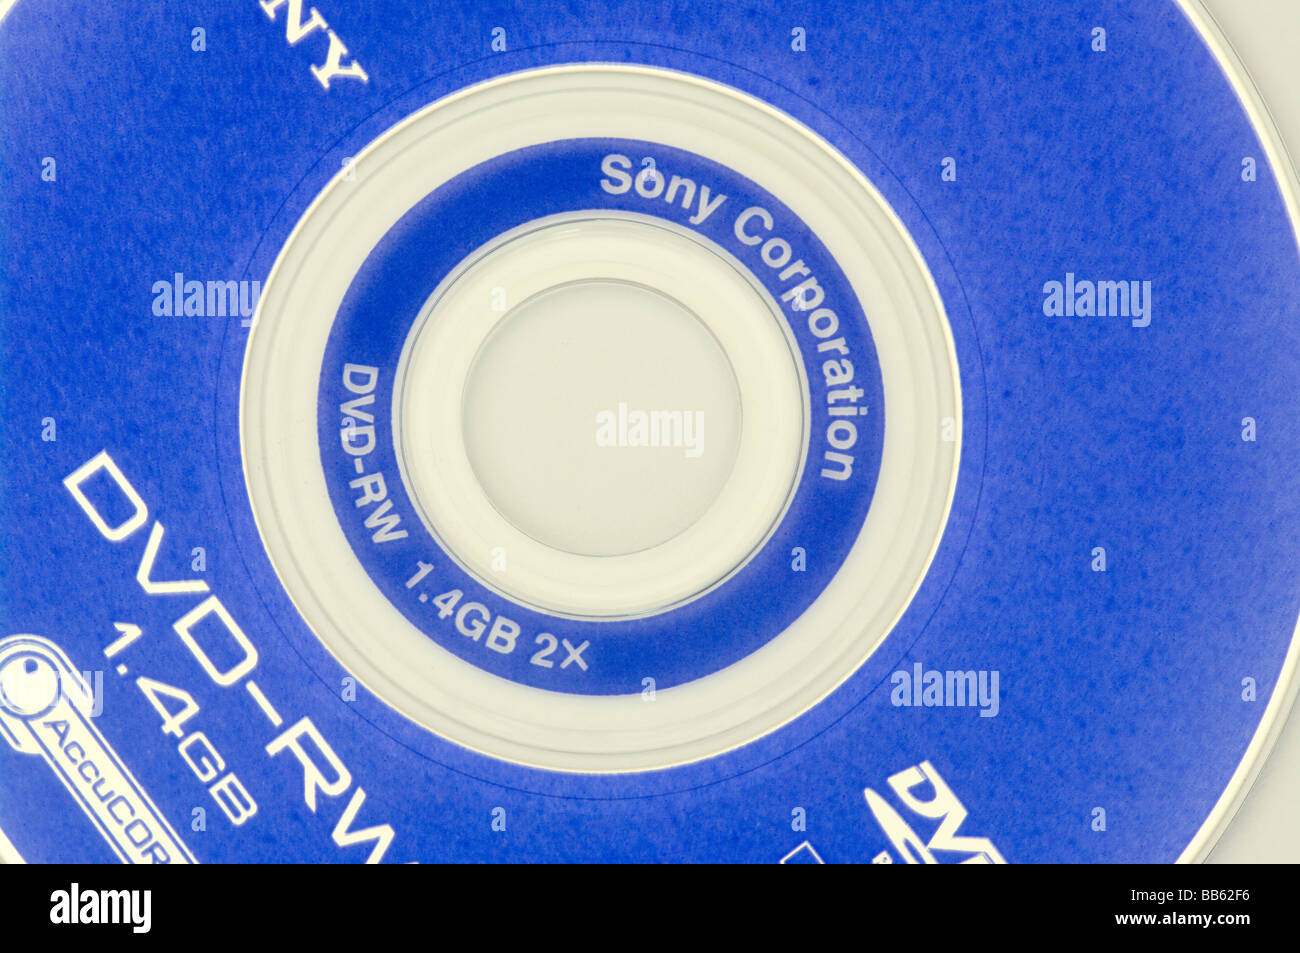 A Sony Re Recordable DVD RW Stock Photo